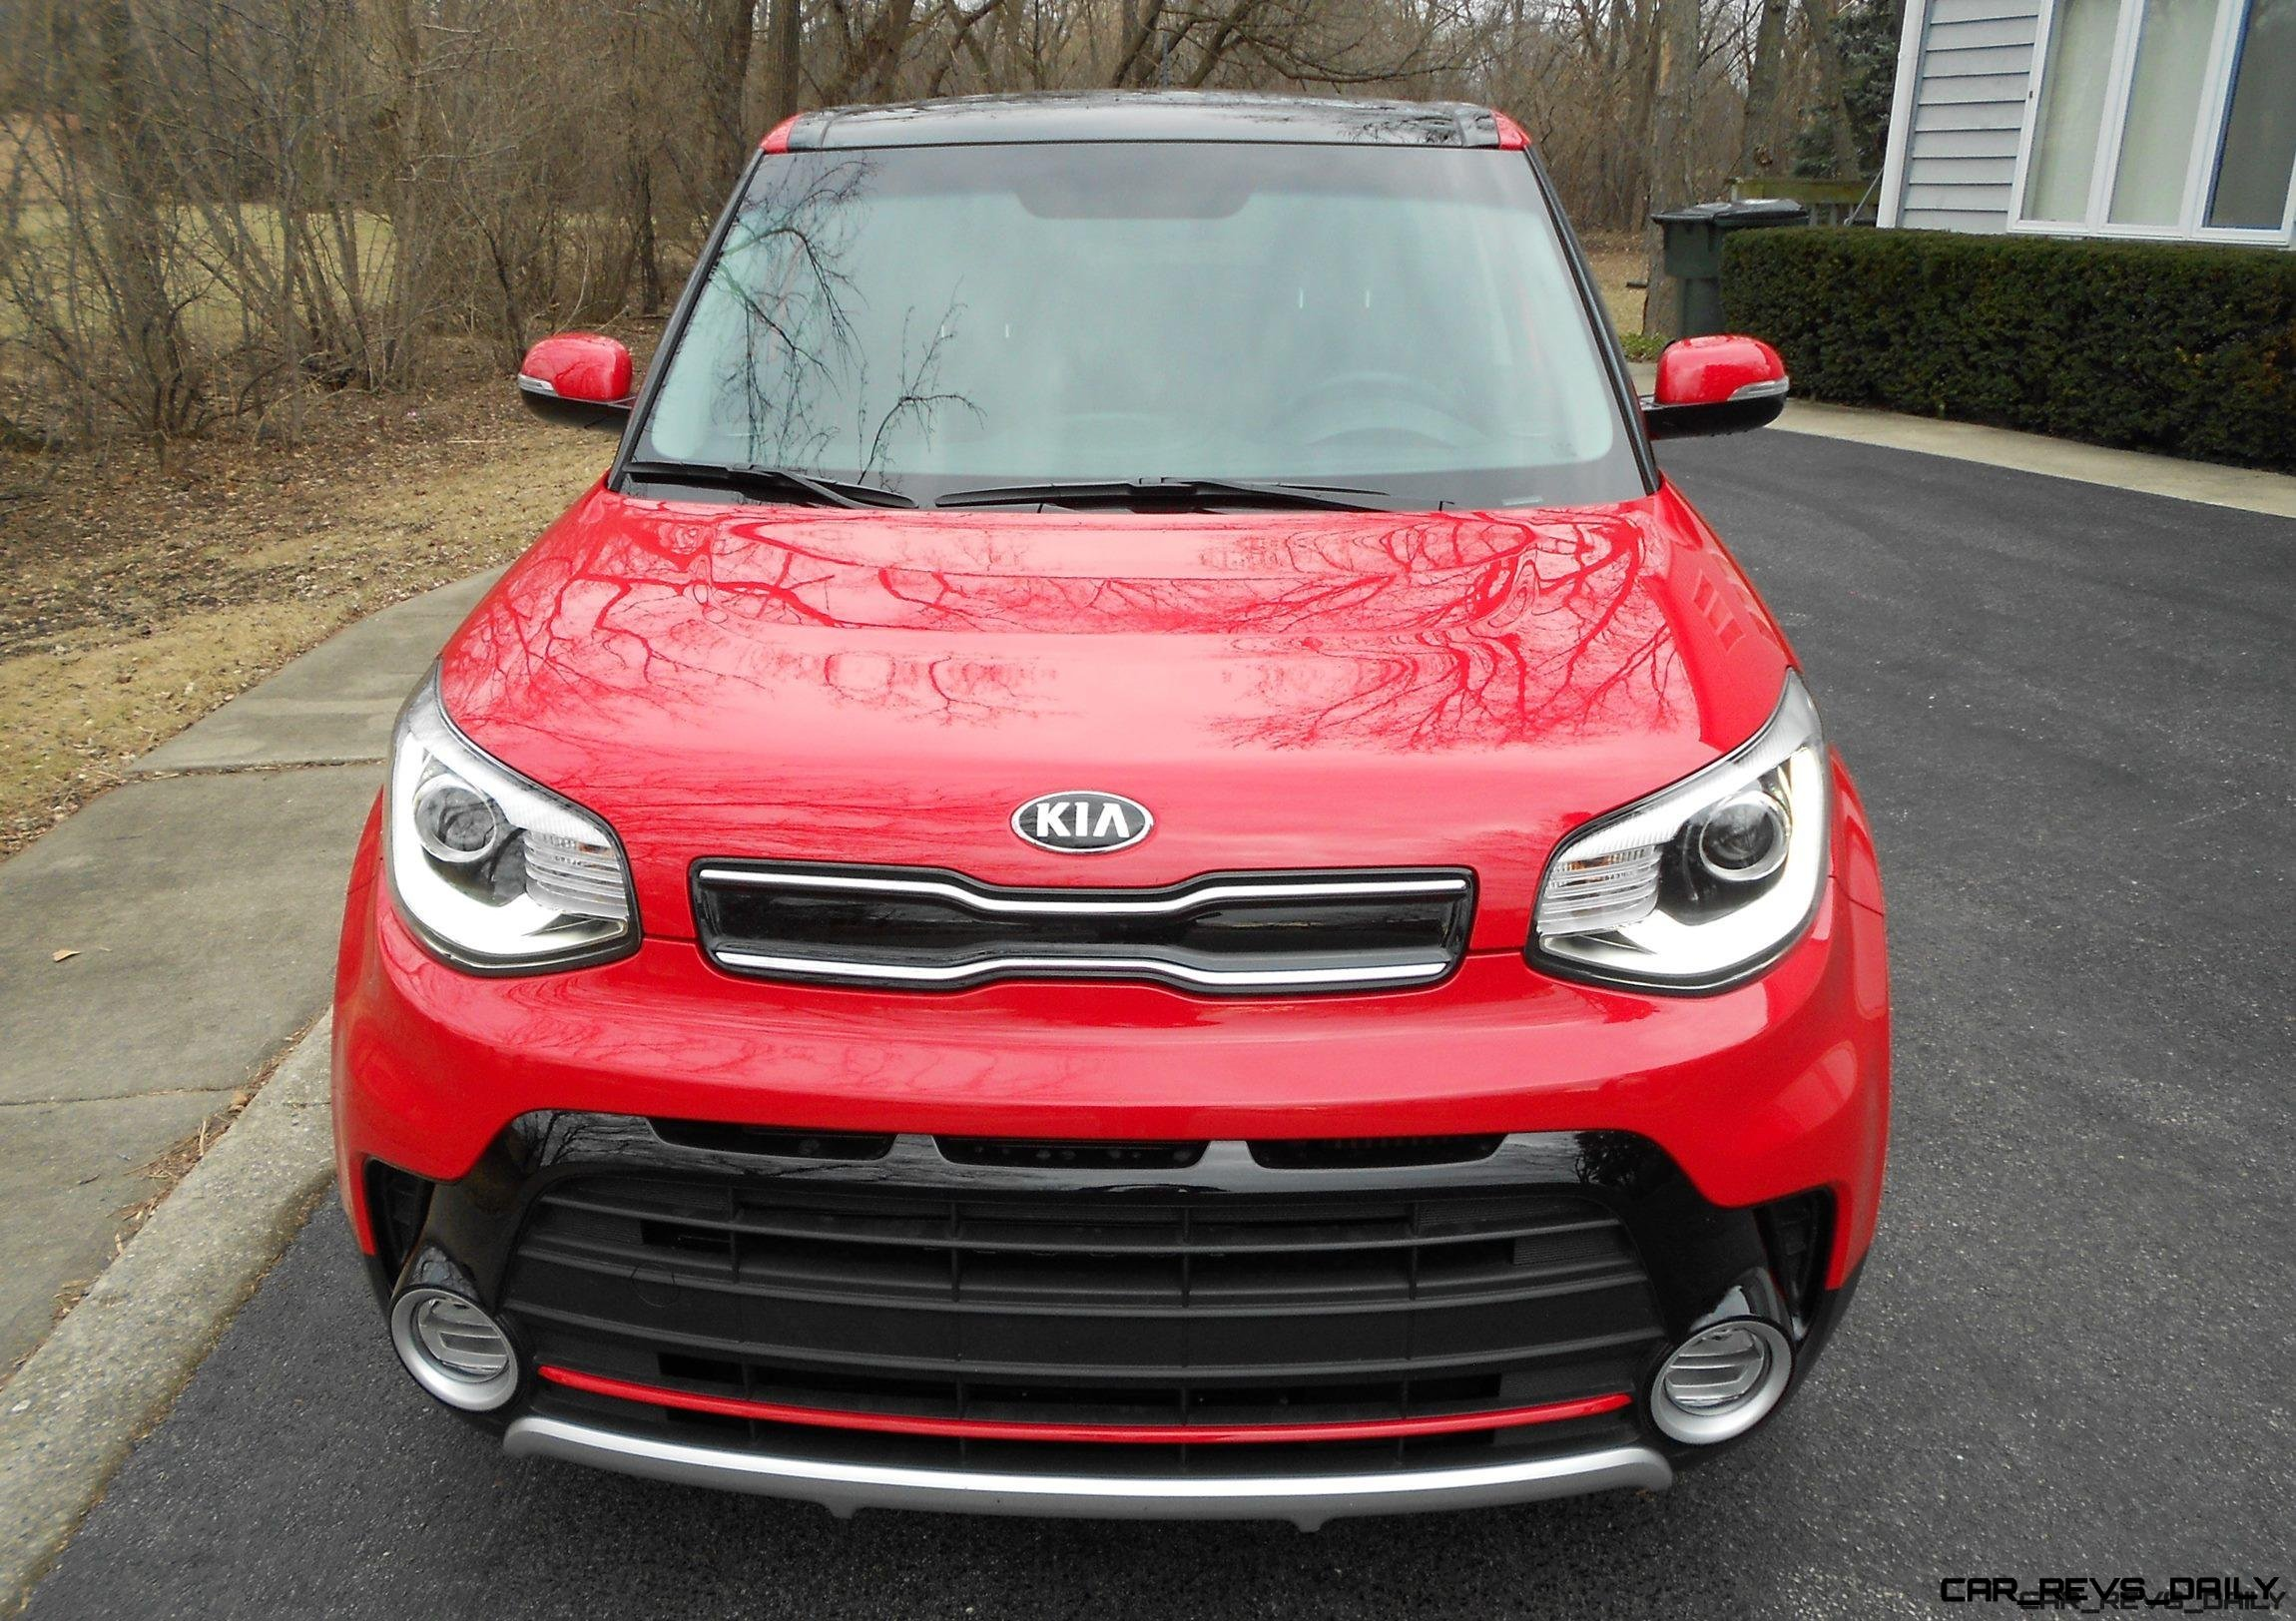 2017 kia soul turbo road test review by ken hawkeye glassman. Black Bedroom Furniture Sets. Home Design Ideas